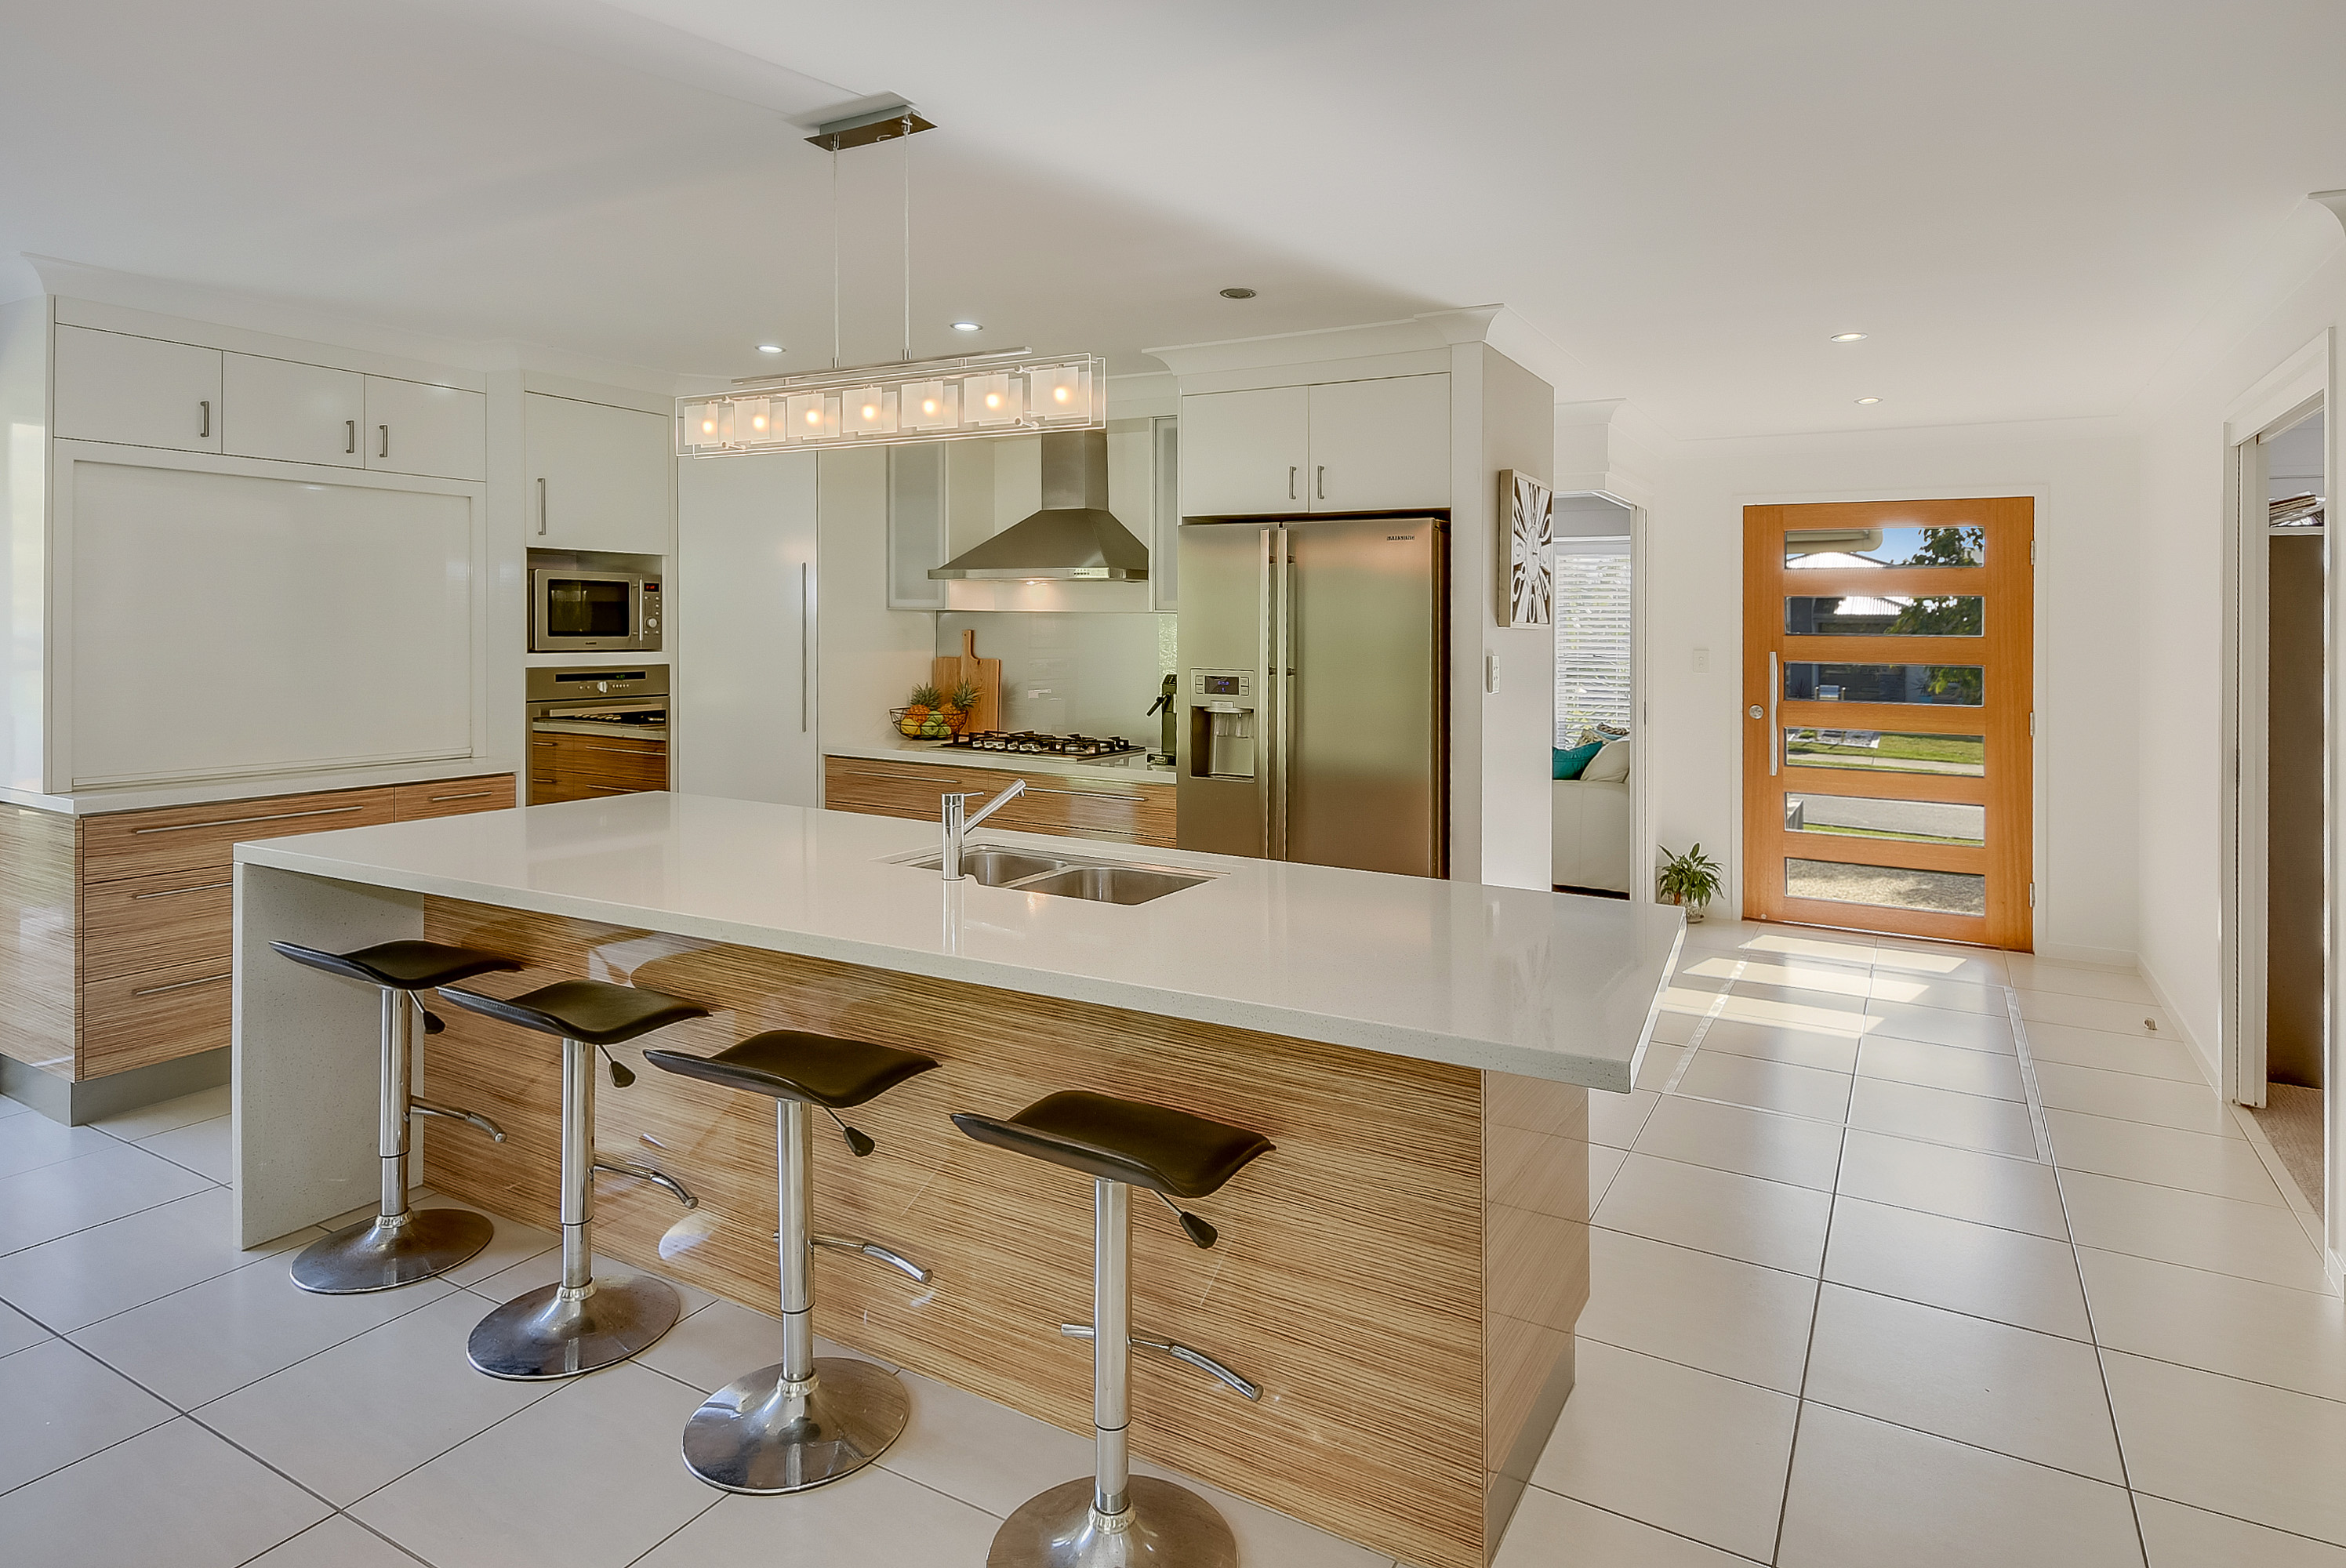 Kitchen and bathrooms caboolture